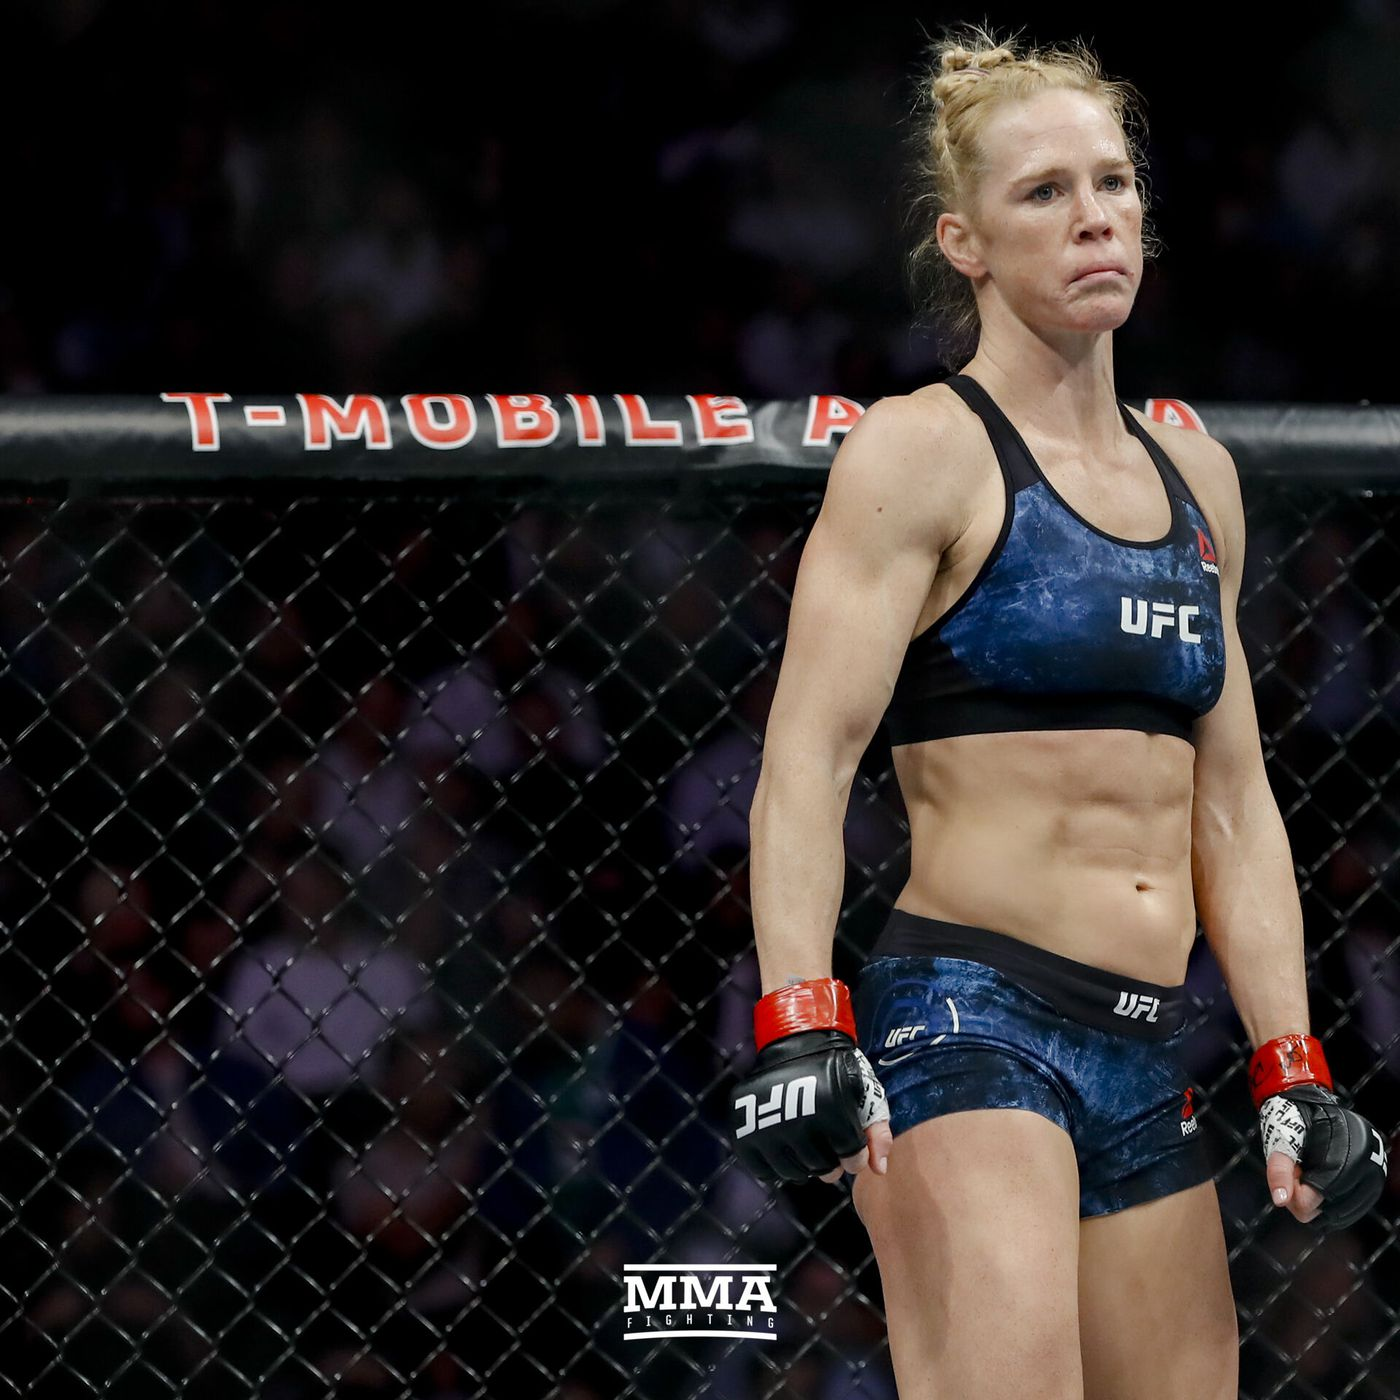 Holly Holm vs. Irene Aldana moved to Oct. 3 UFC main event - MMA Fighting